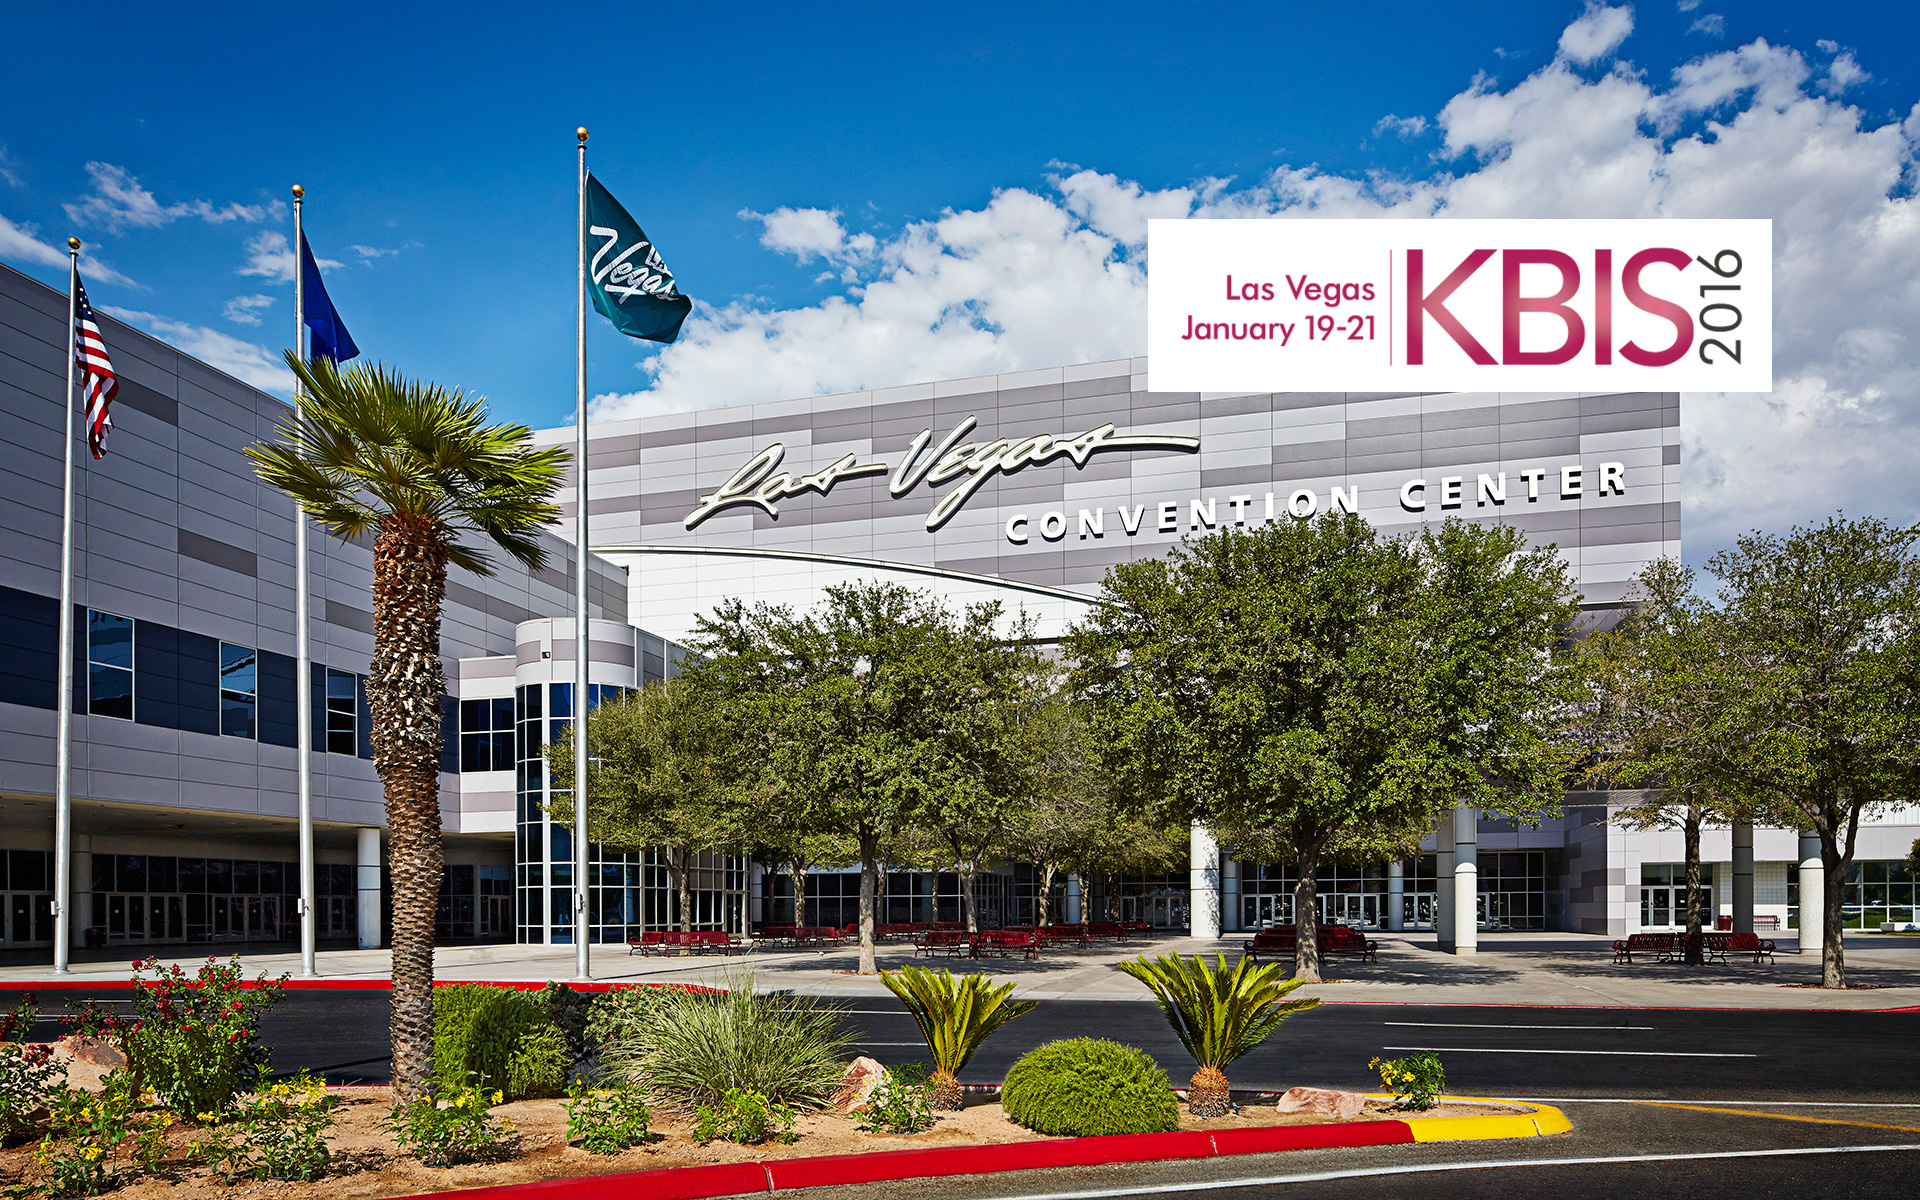 HANÁK at the prestigious KBIS 2016 show in Las Vegas.